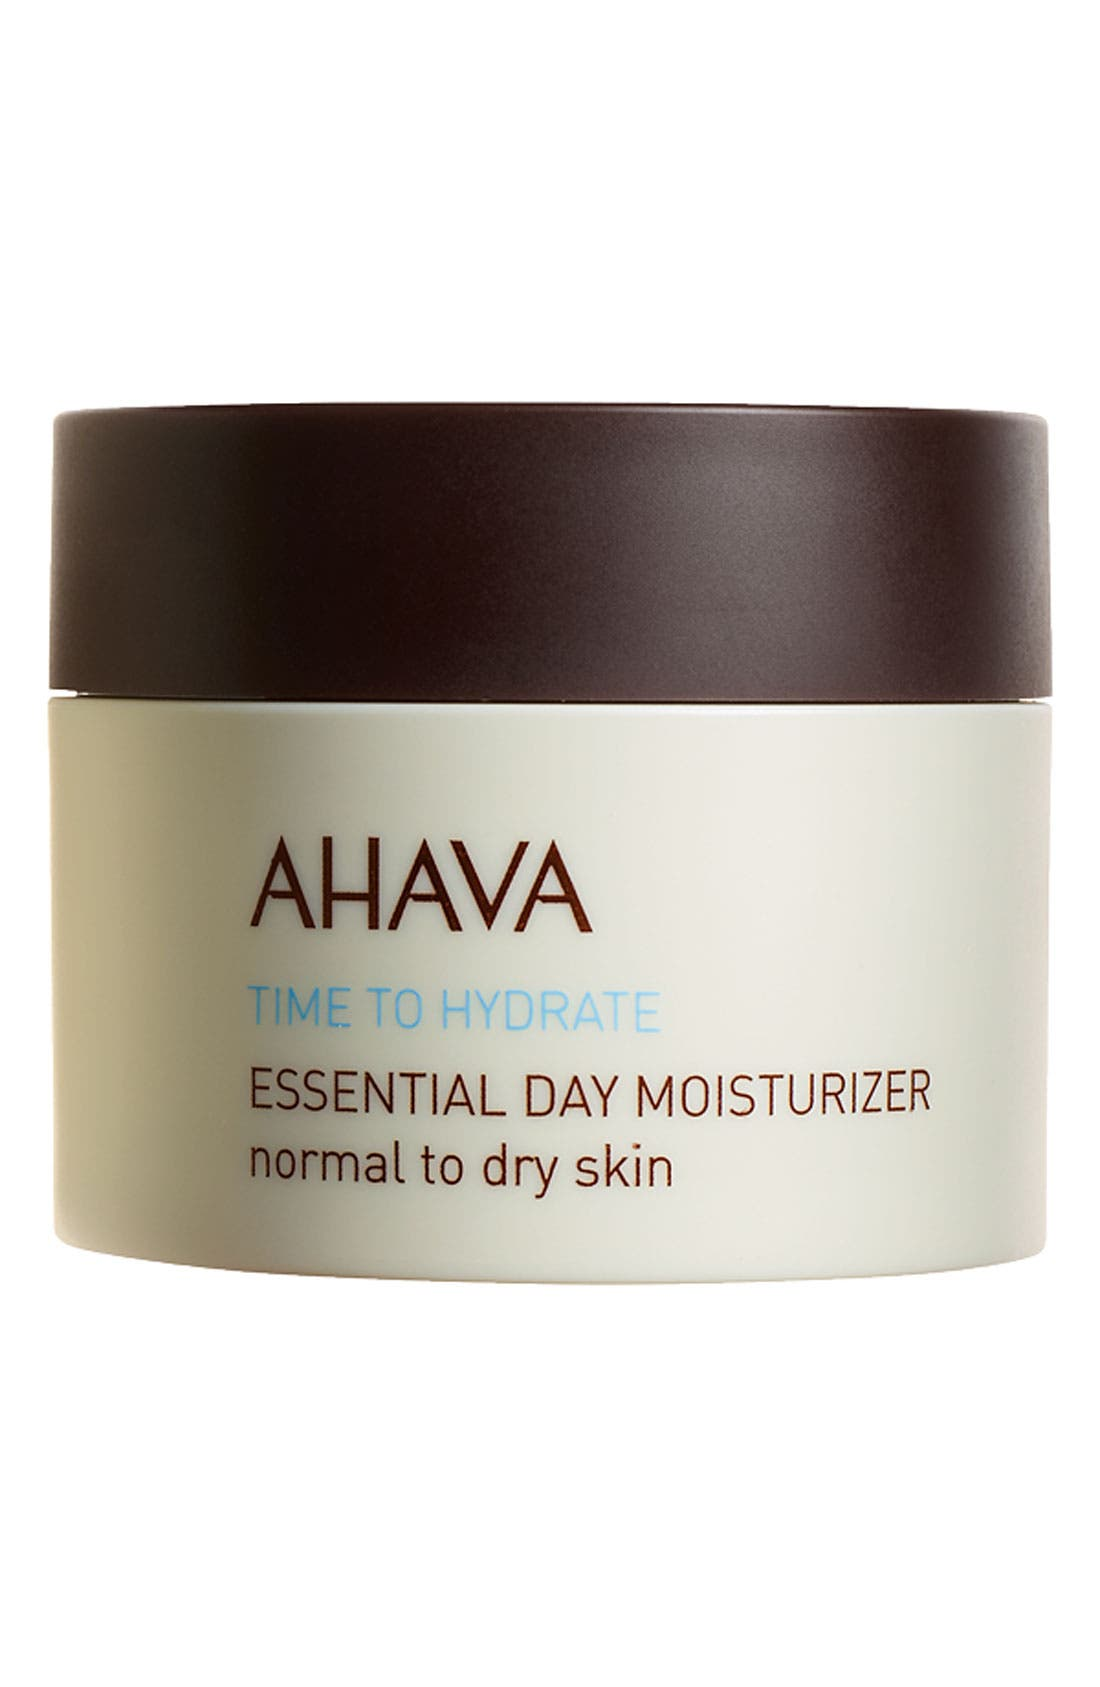 'Time to Hydrate' Essential Day Moisturizer,                             Main thumbnail 1, color,                             000